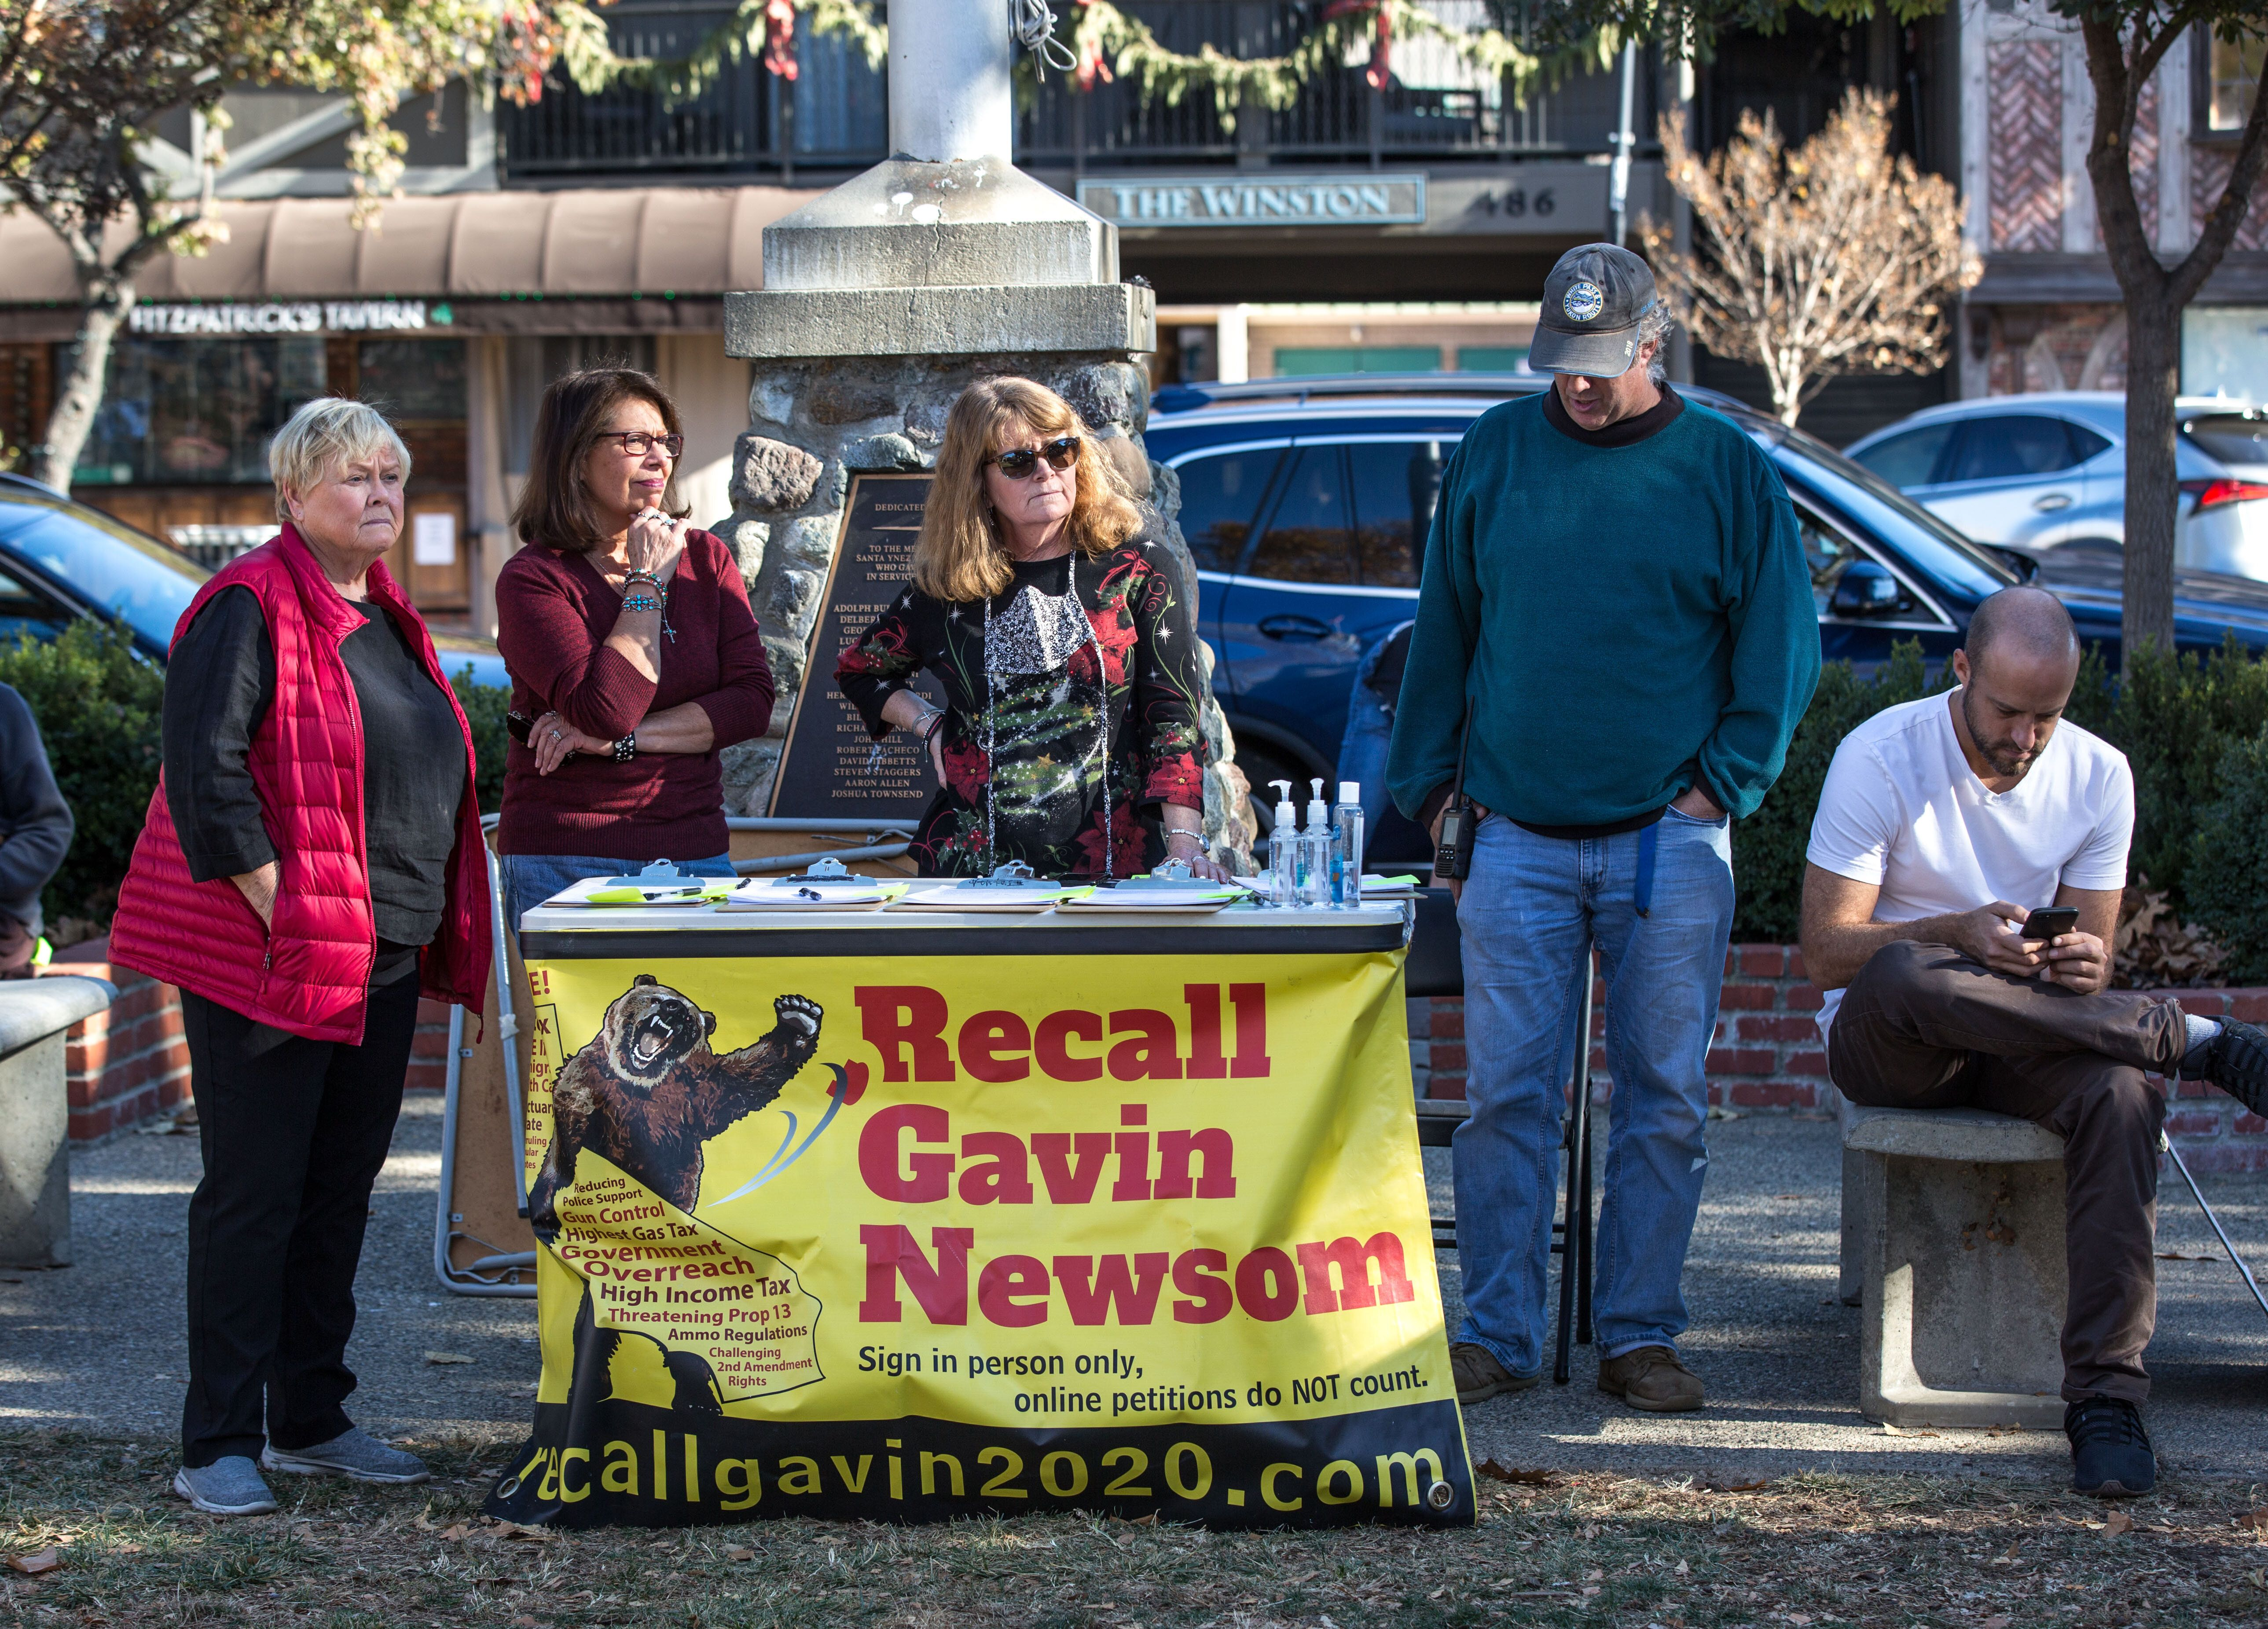 """People circulate a """"Recall Gavin Newsom"""" petition in Solvang, California, during a pro-Donald Trump rally."""